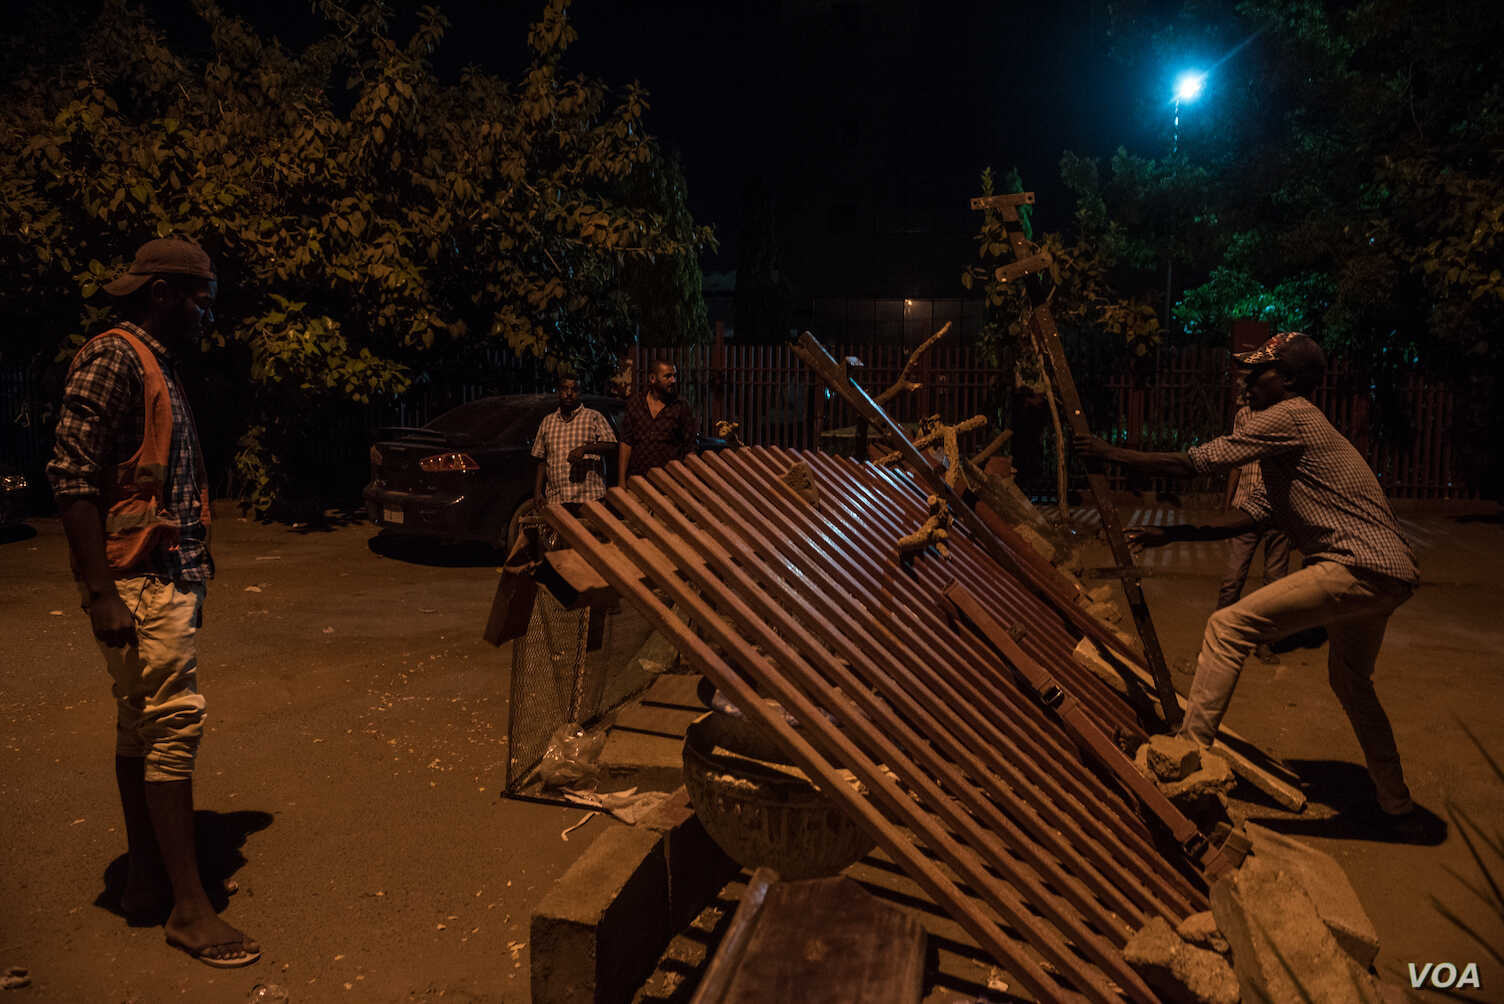 Protesters rebuild a barricade that was destroyed by a military vehicle at a Khartoum checkpoint on April 29, 2019. (J. Patinkin for VOA)